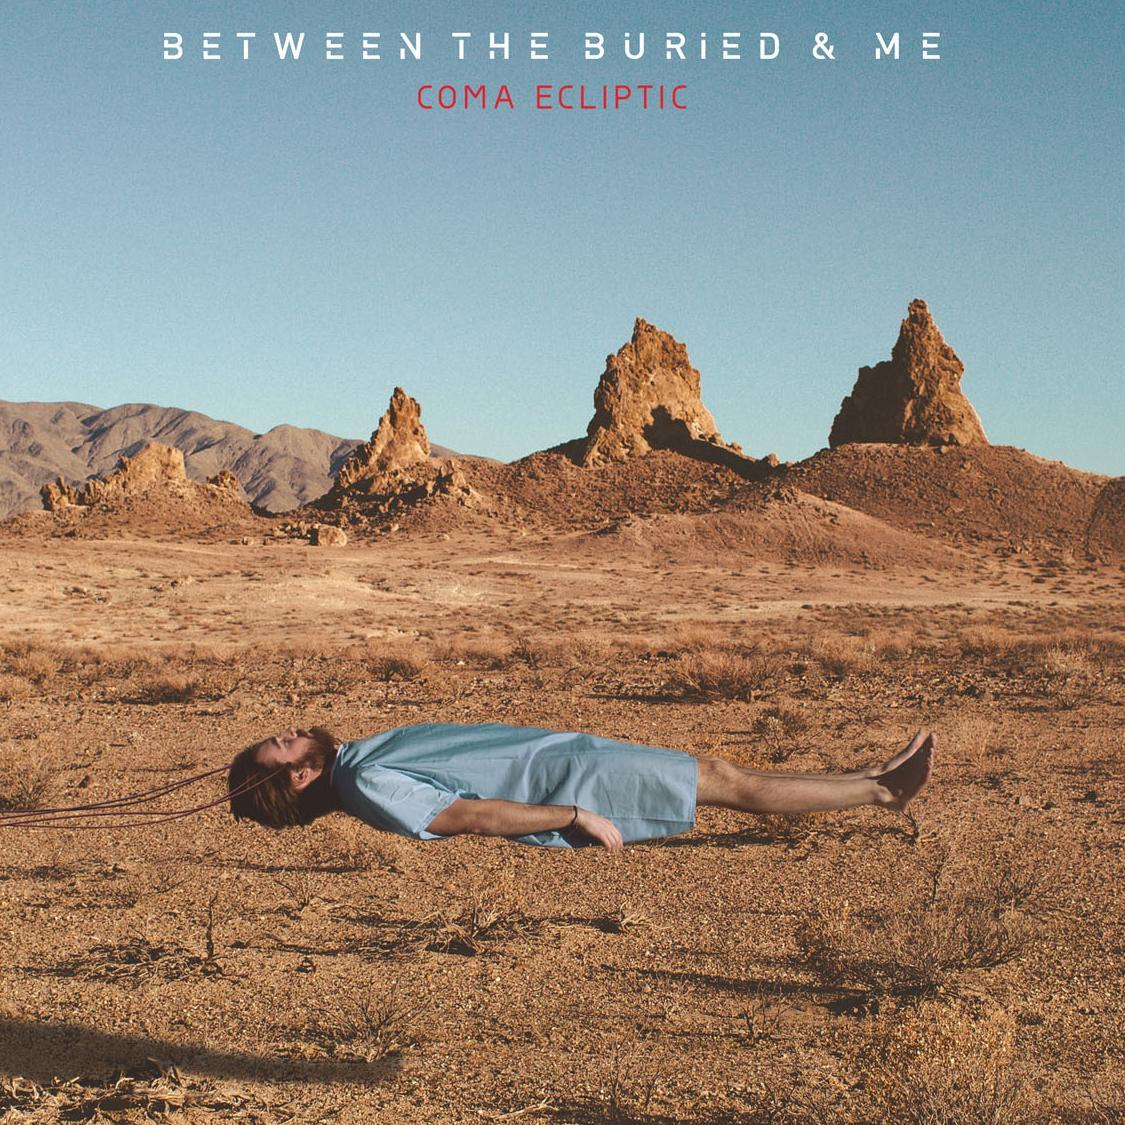 Between the Buried and Me – Coma Ecliptic Review